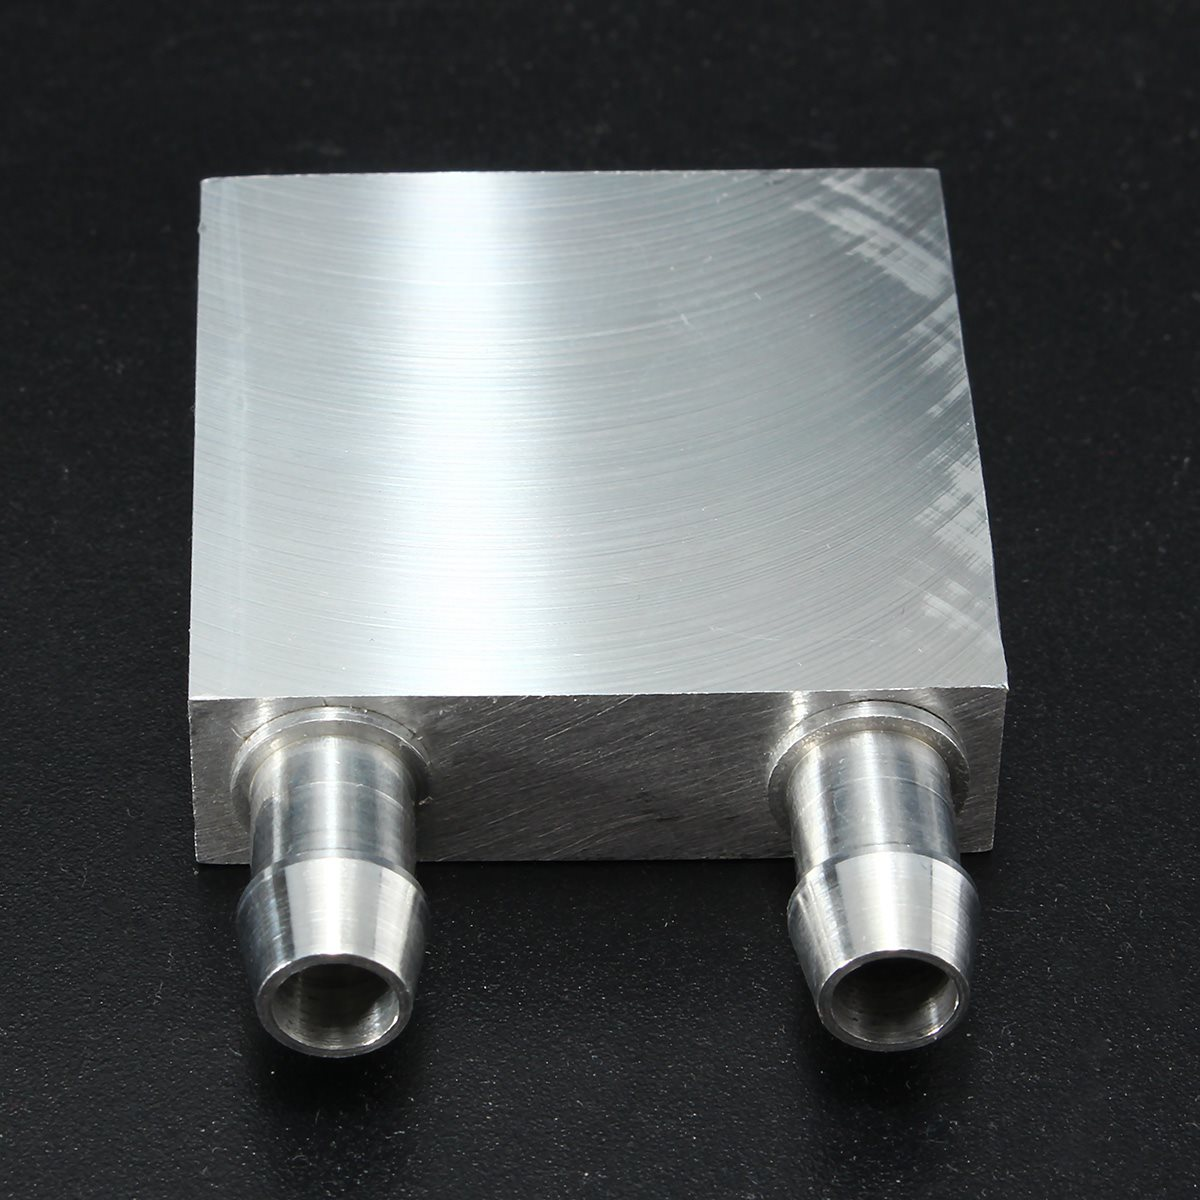 2018 Primary Aluminum Water Cooling Block 40*40mm for Liquid Water Cooler Heat Sink System Silver Use For PC Laptop CPU